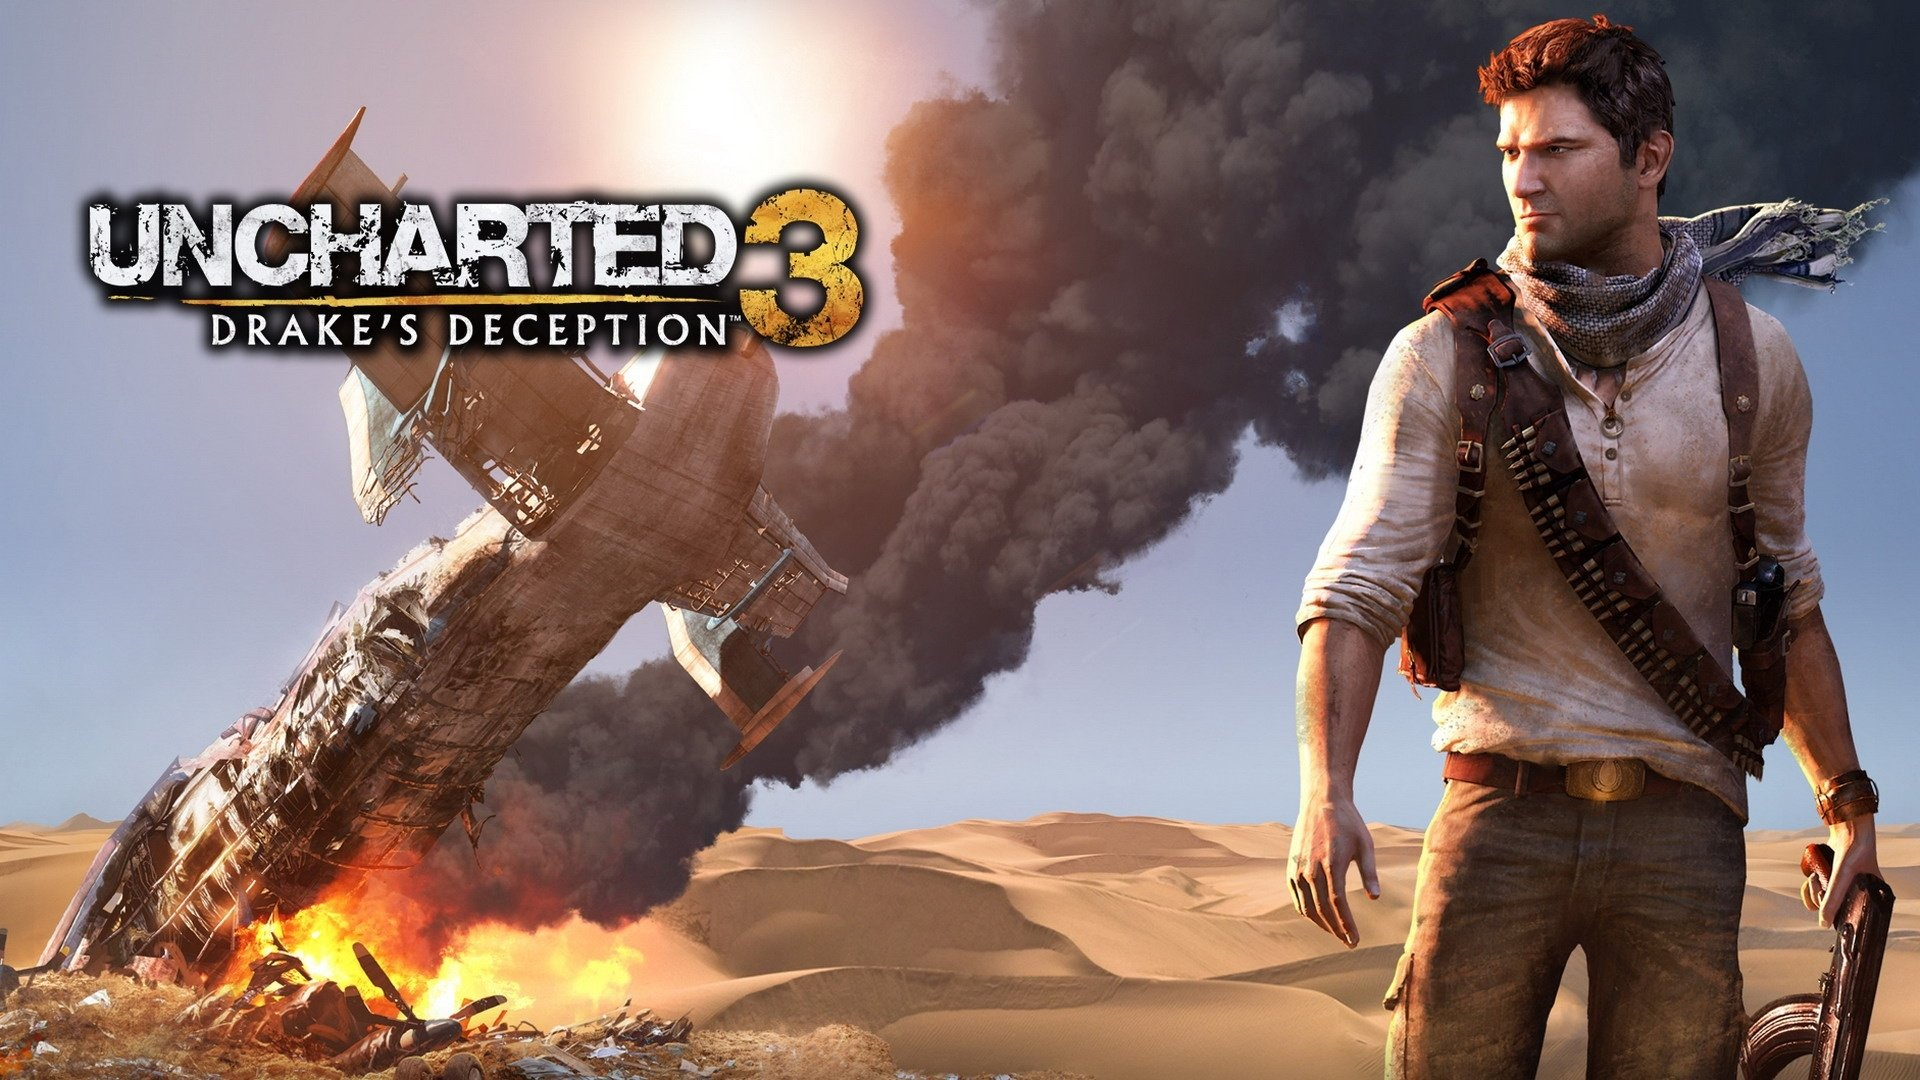 Download Wallpaper 1440x2560 Uncharted 3 drakes deception, Smoke ...